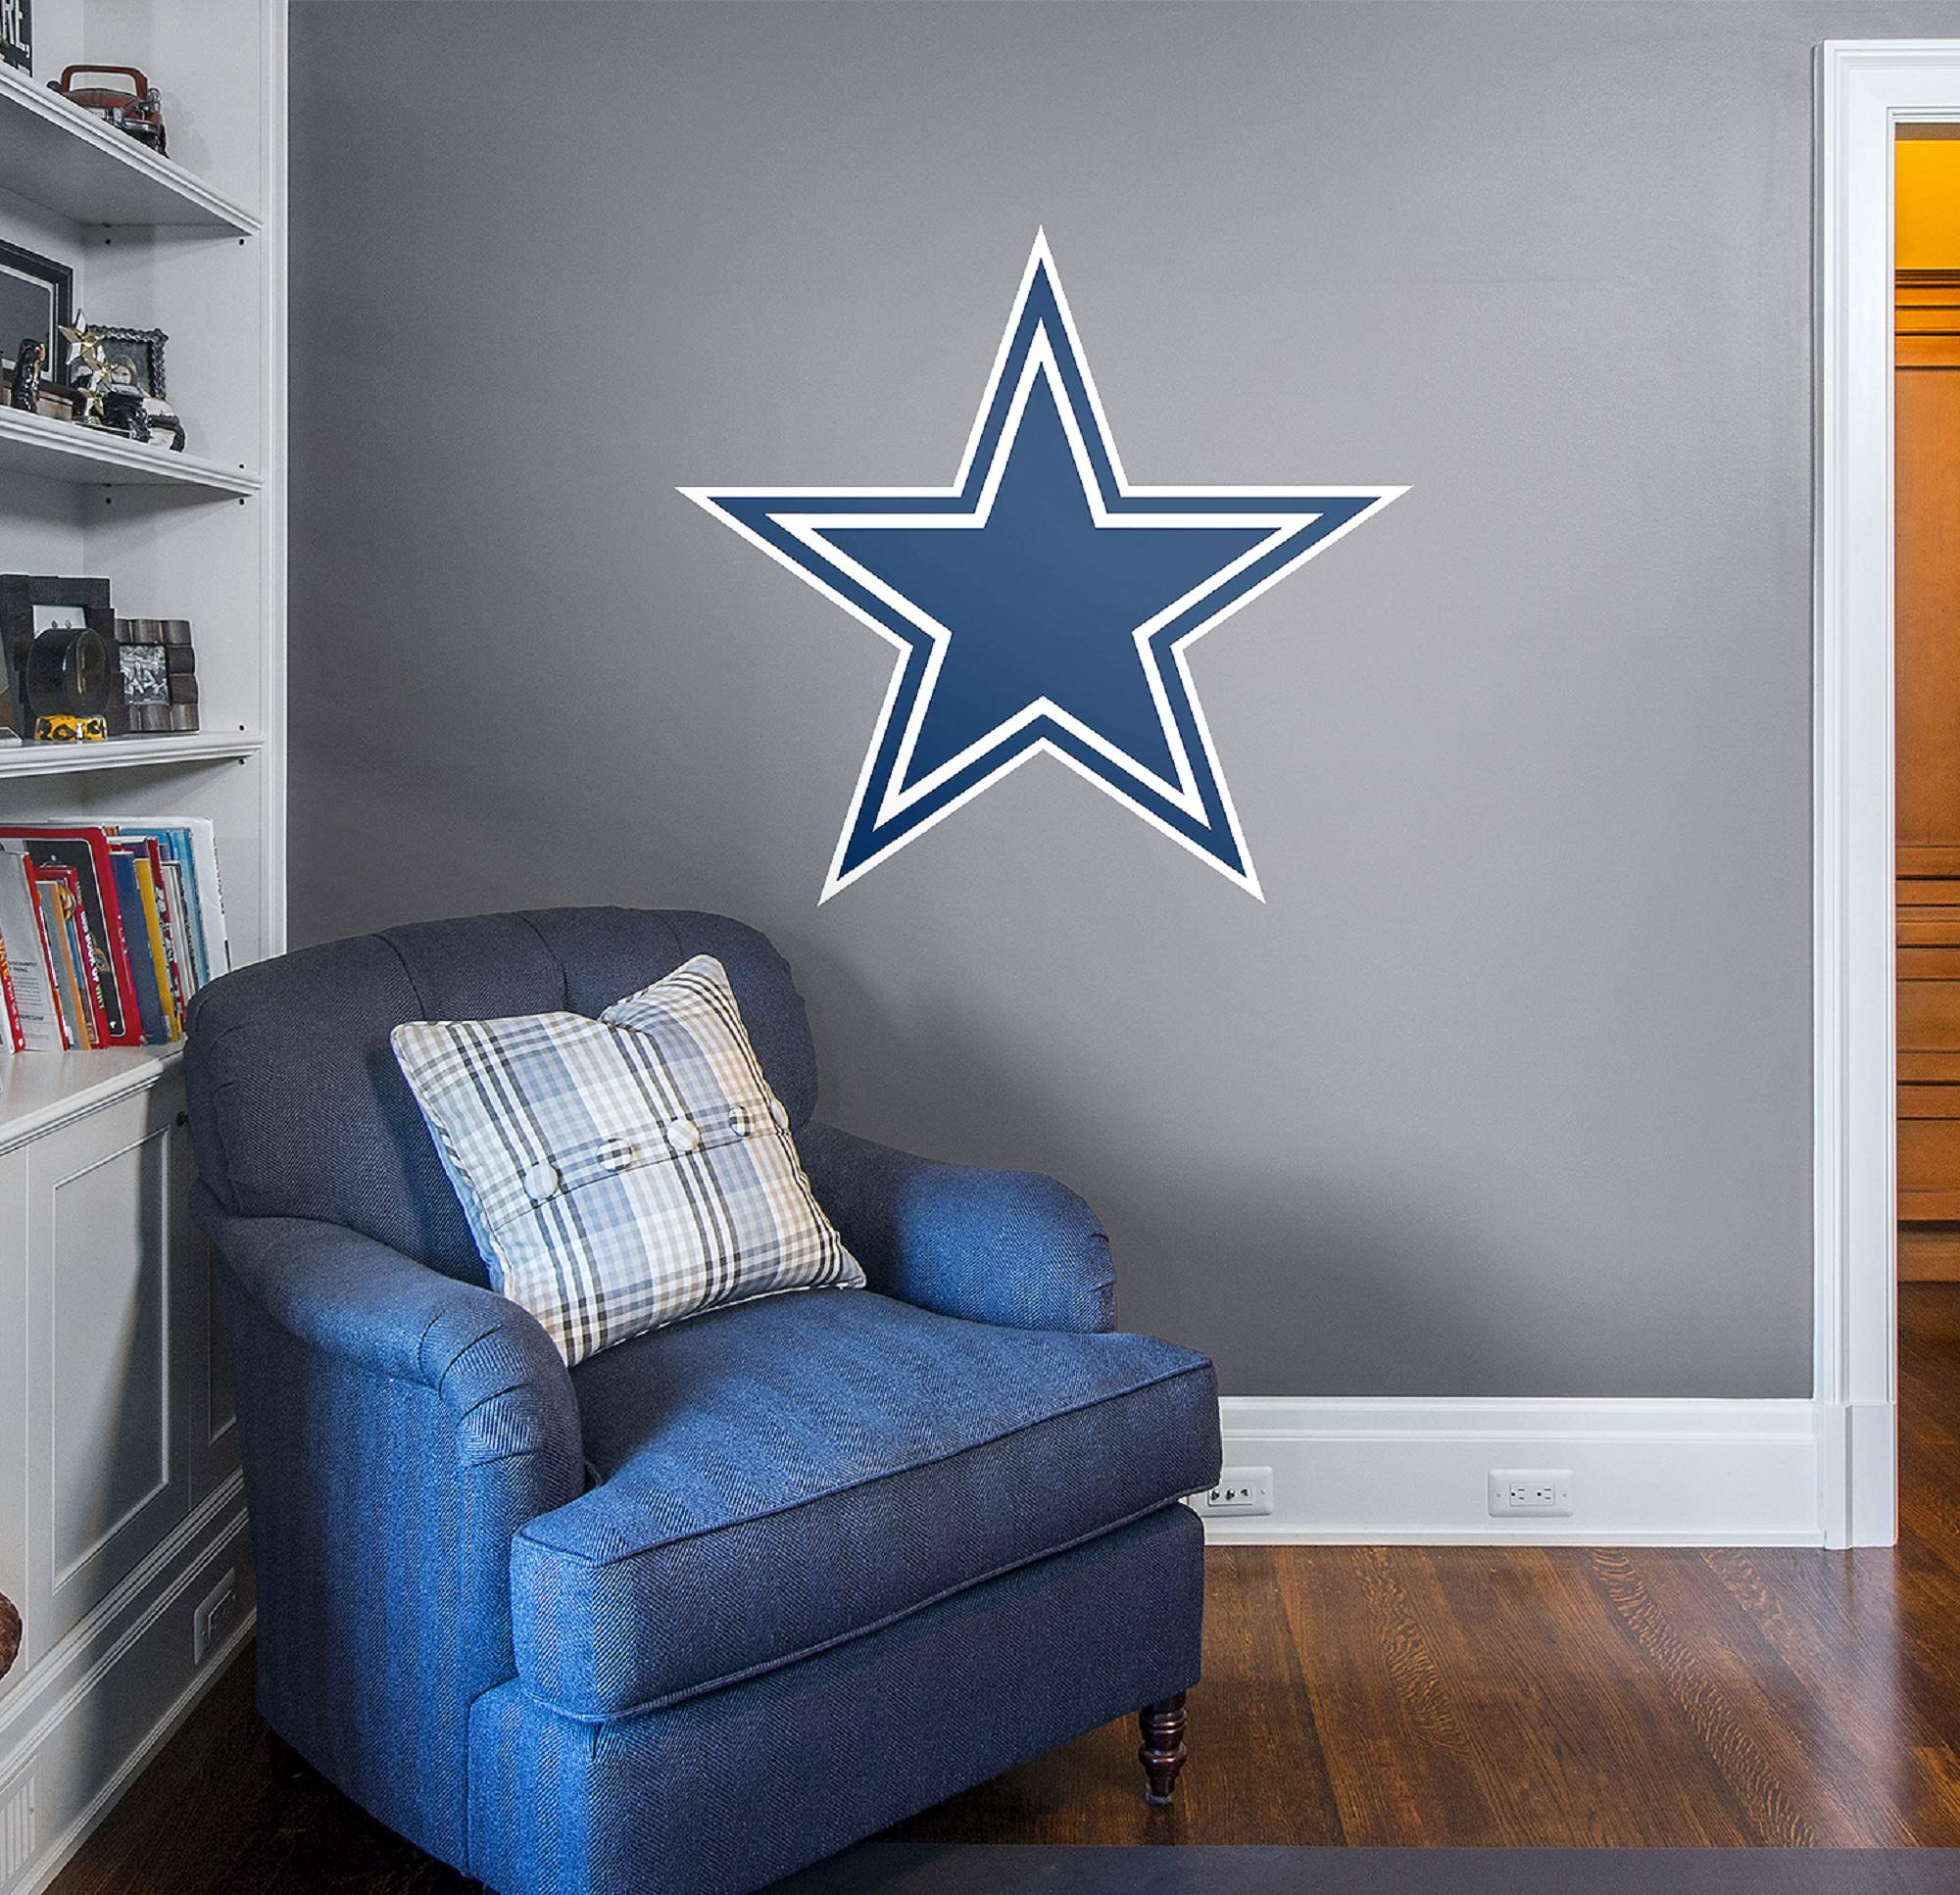 Fathead NFL Dallas Cowboys Officially Licensed Logo Removable Wall Decal, Multicolor, Giant - 14-14011 by FATHEAD